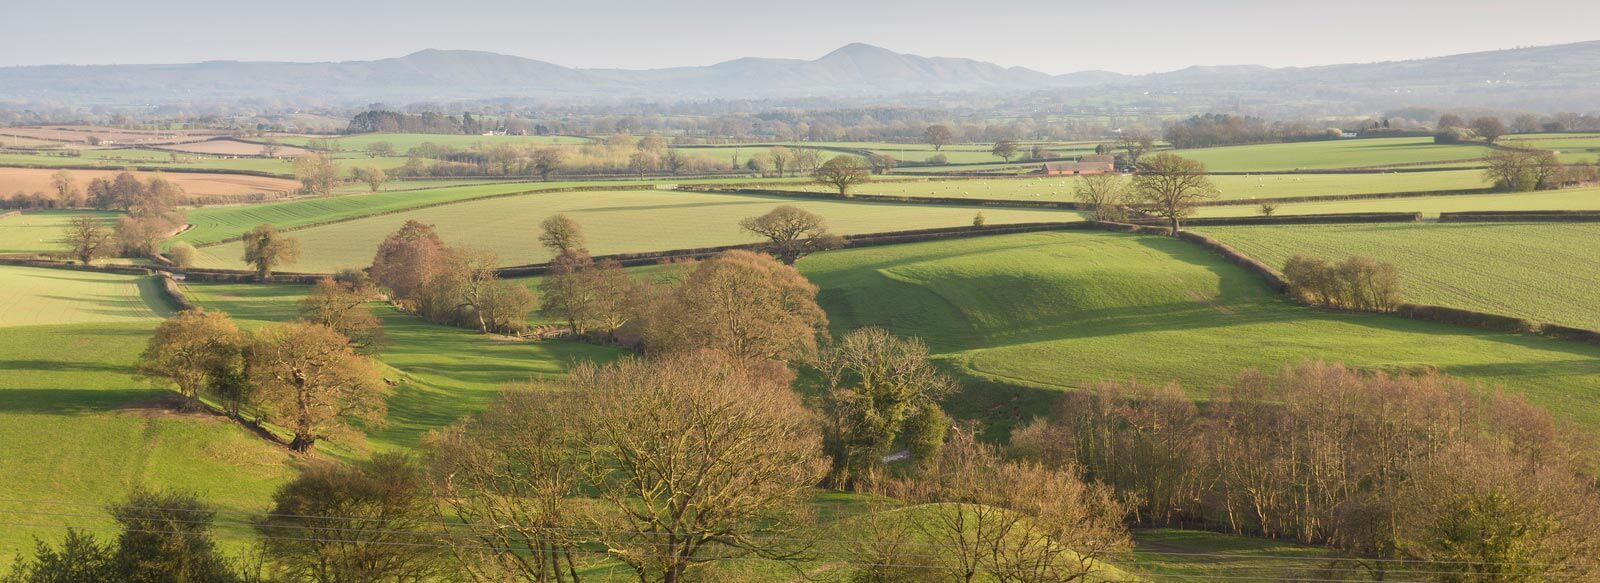 tourist attractions in shropshire